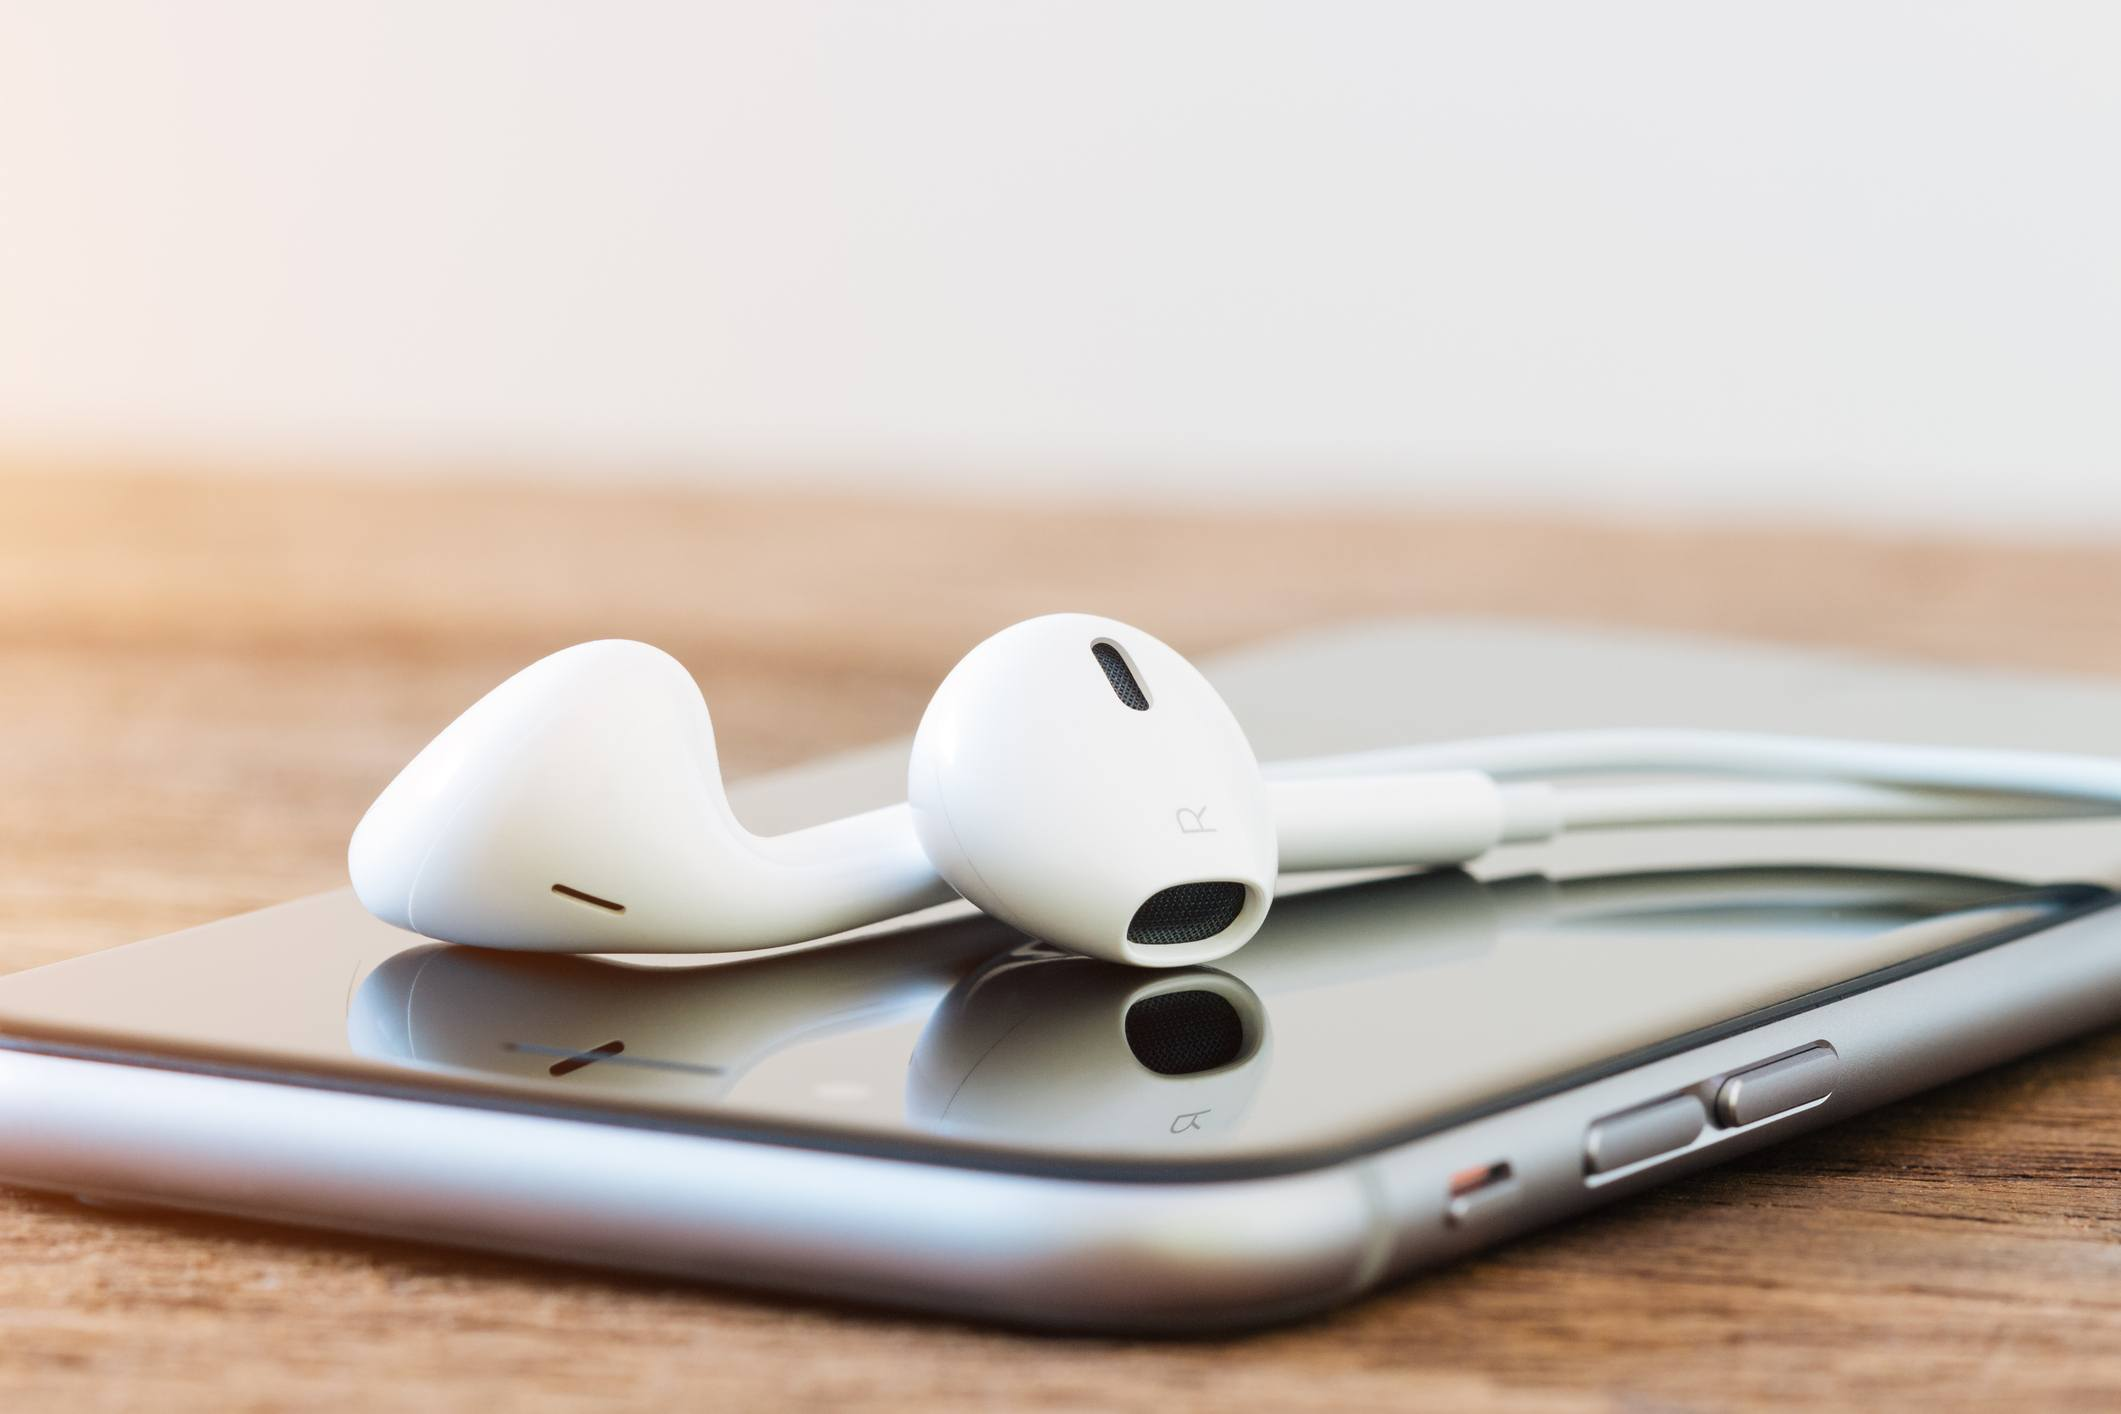 closeup iphone and earphones or headphones device on table